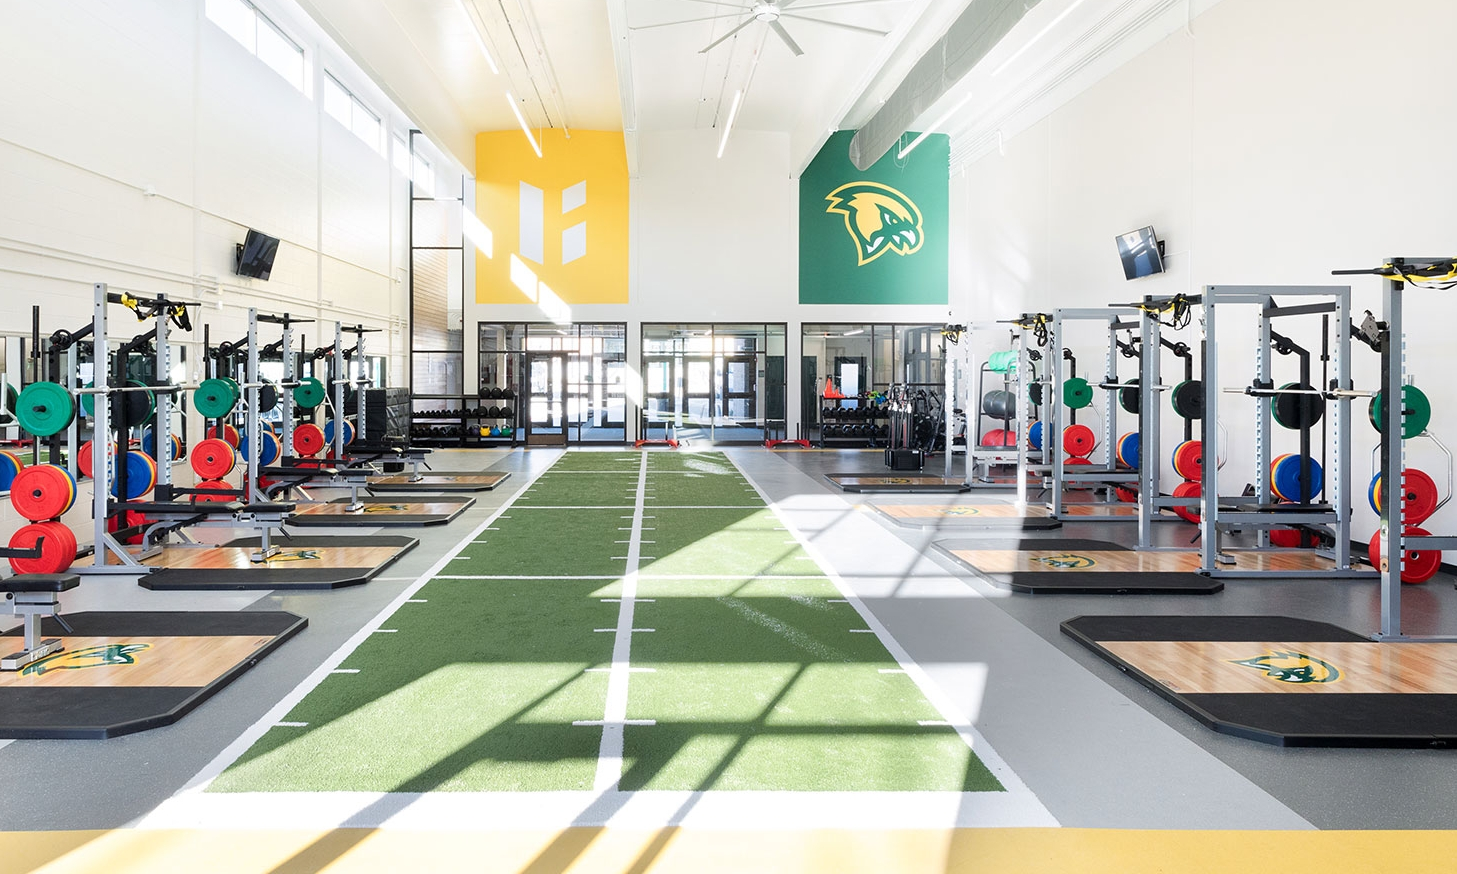 Fitchburg State University Landry Arena Renovation received a CMAA New England Award - The Construction Management Association of America's New England Chapter recognized the Landry Arena Renovation and Adaptive Reuse with a 2018 CMAA New England Award. Read more.